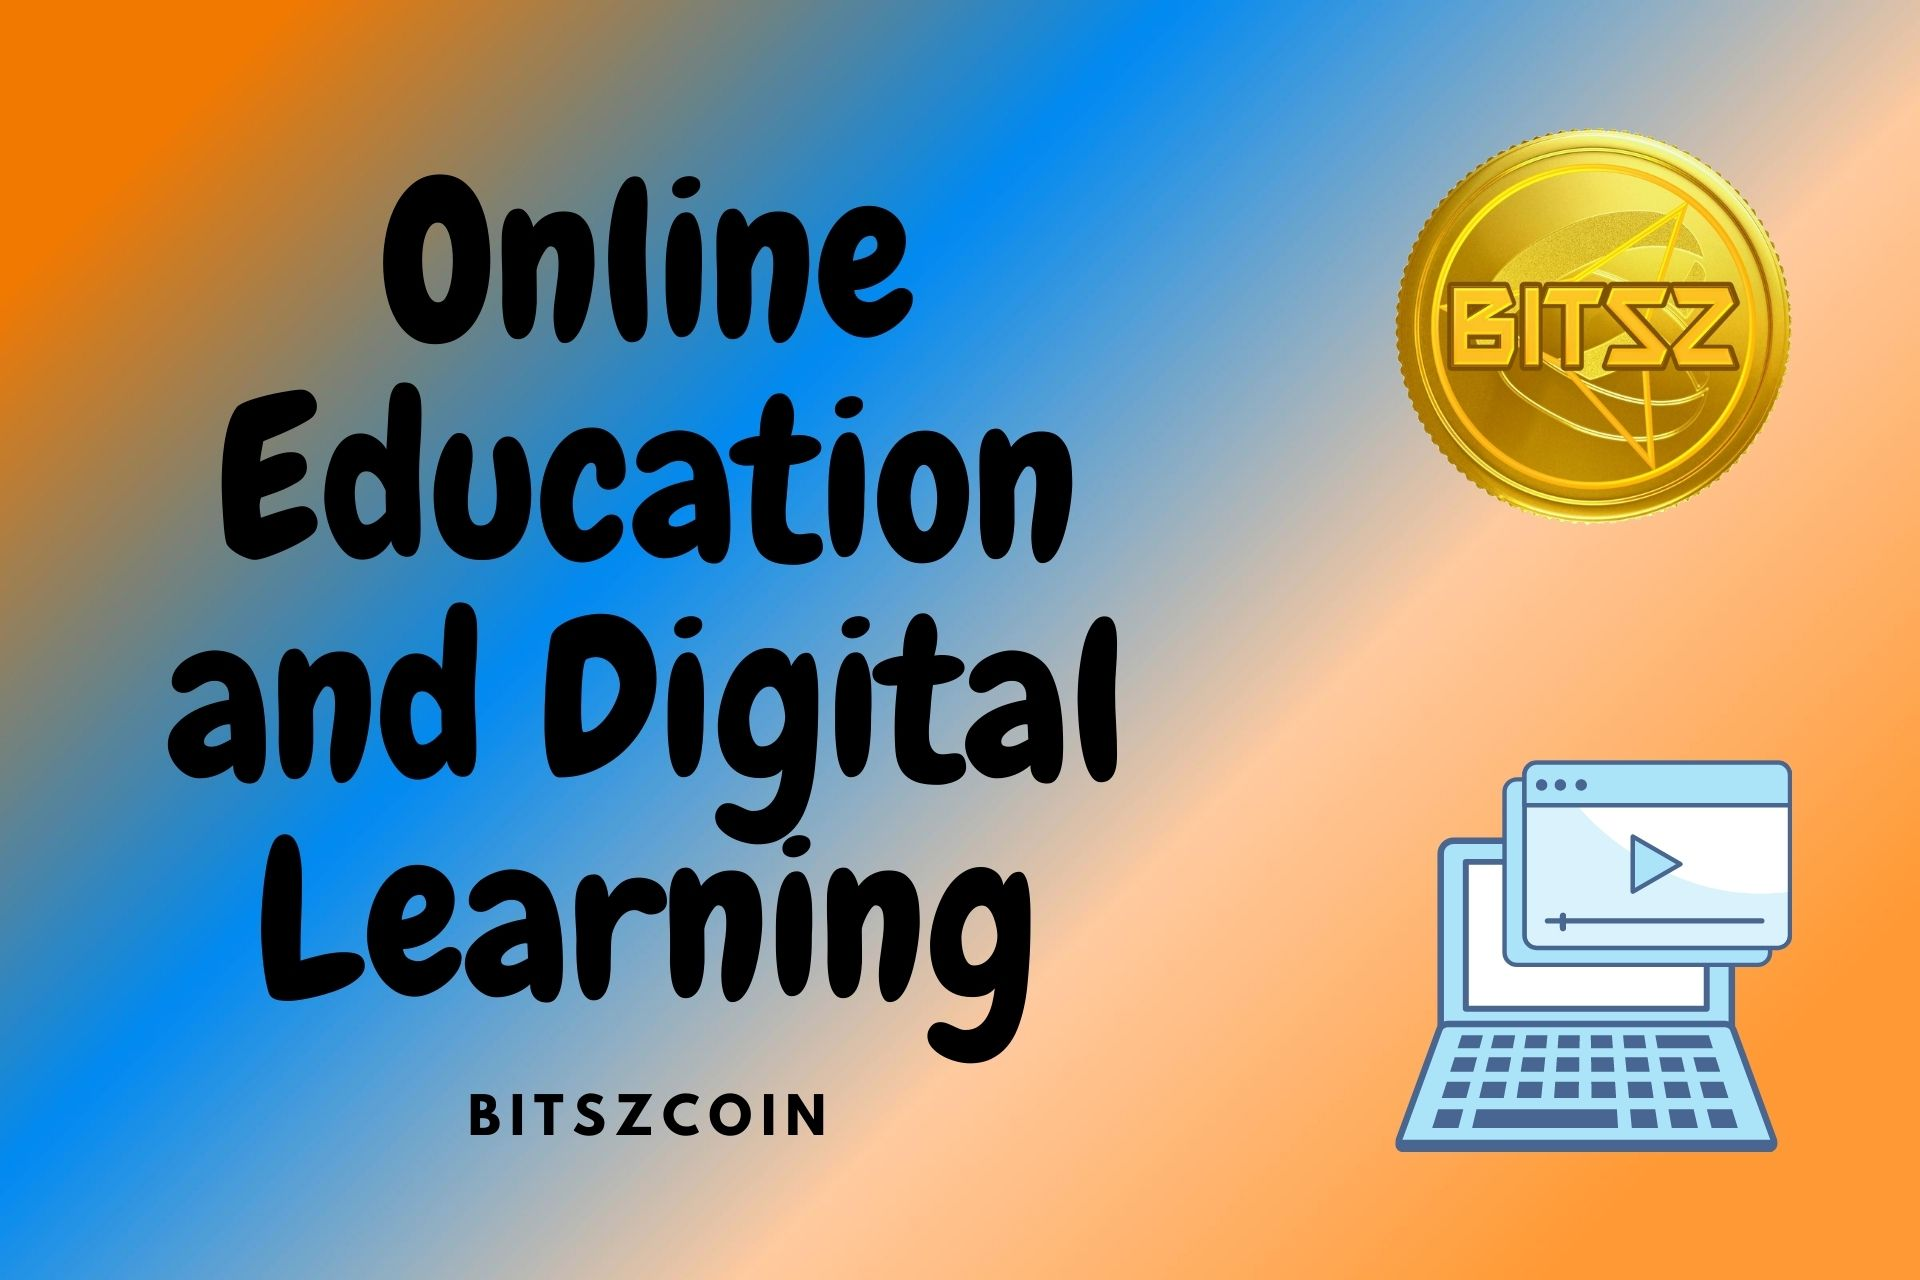 Bitszcoin, the First Cryptocurrency to Promote Online Education and Digital Learning